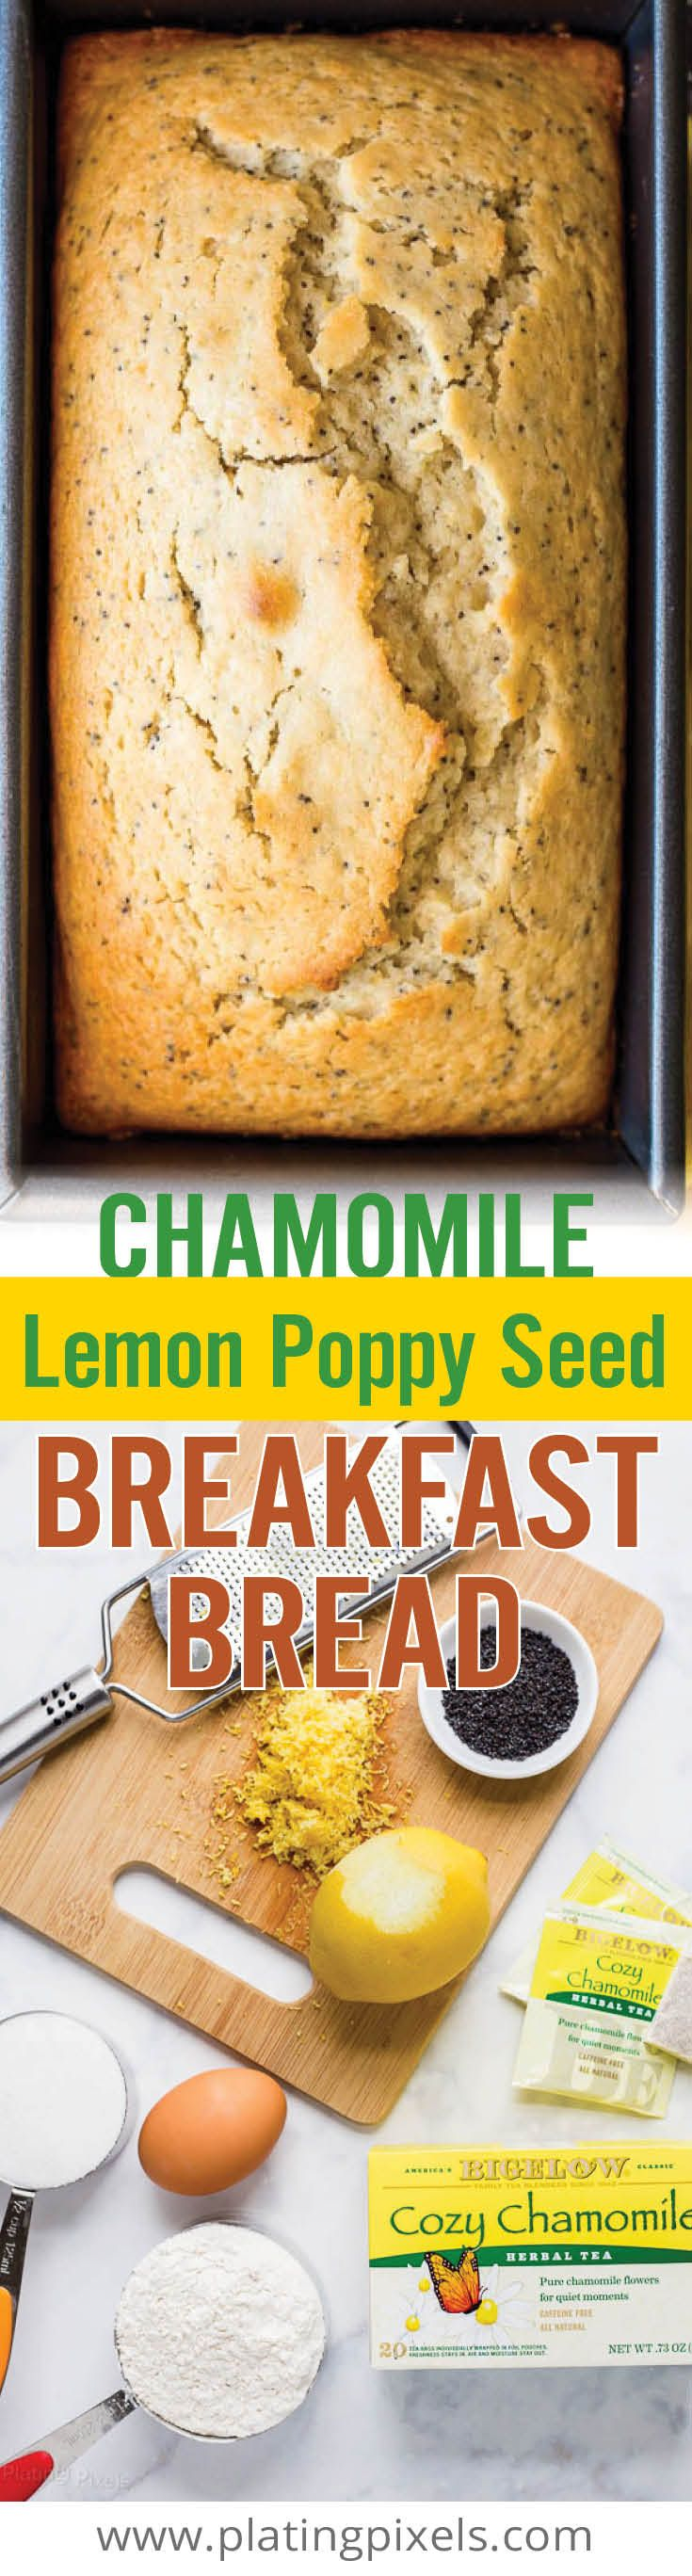 Quick and easy Chamomile Lemon Poppy Seed Breakfast Bread. This moist bread is loaded with lemon juice and zest, poppy seeds, almond extract and brewed chamomile tea for a unique, sweet brunch recipe. [ad] #TeaProudly - www.platingpixels.com